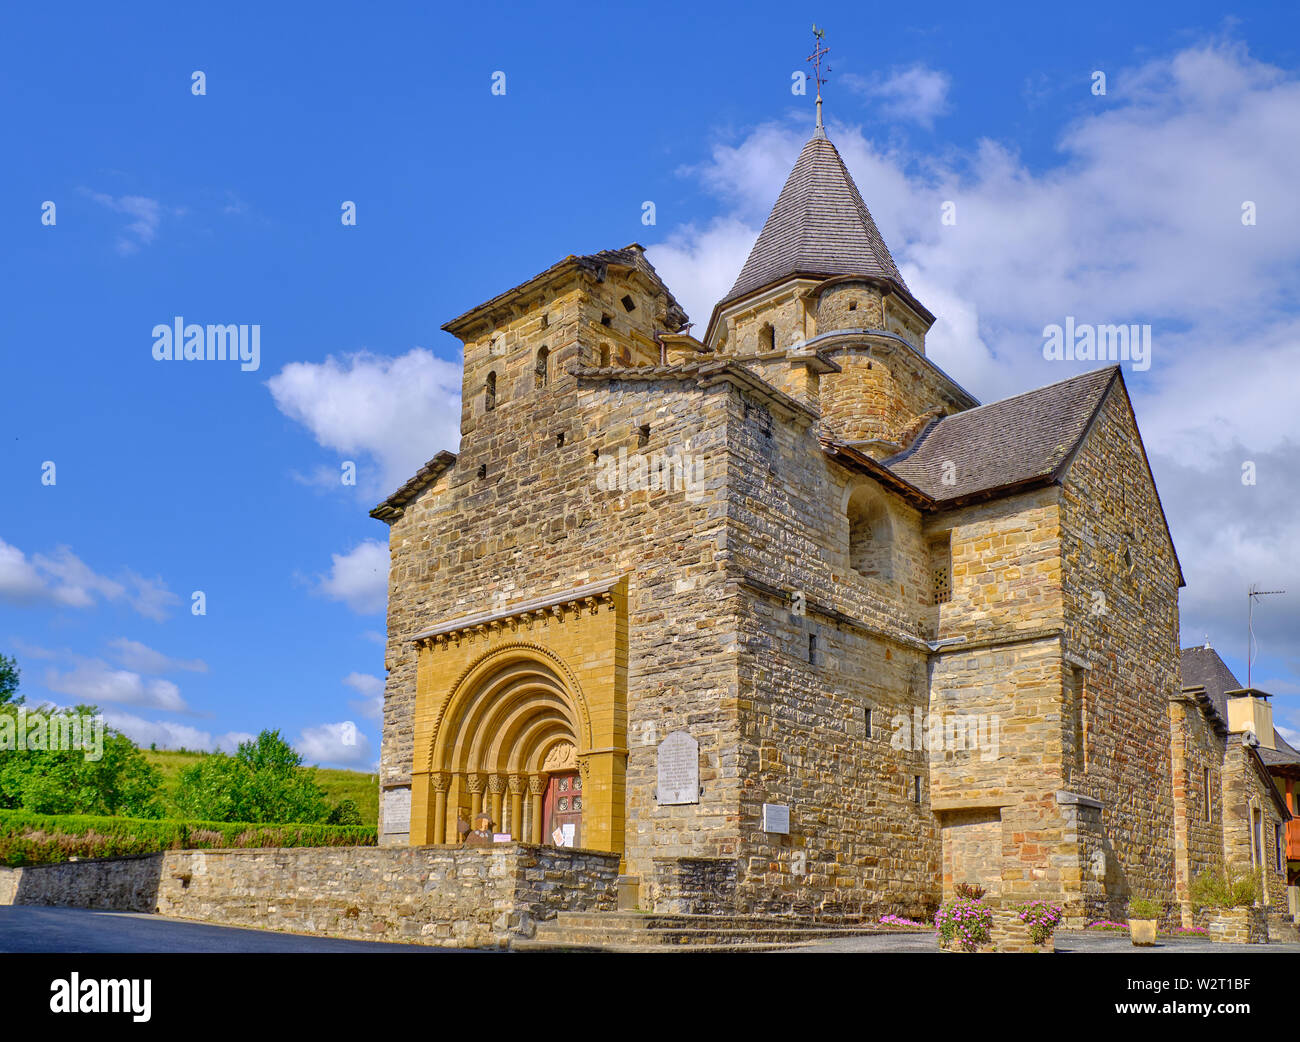 Church of St Blaise Hospital in Pyrenees Atlantique region of France with blue sky background - Stock Image